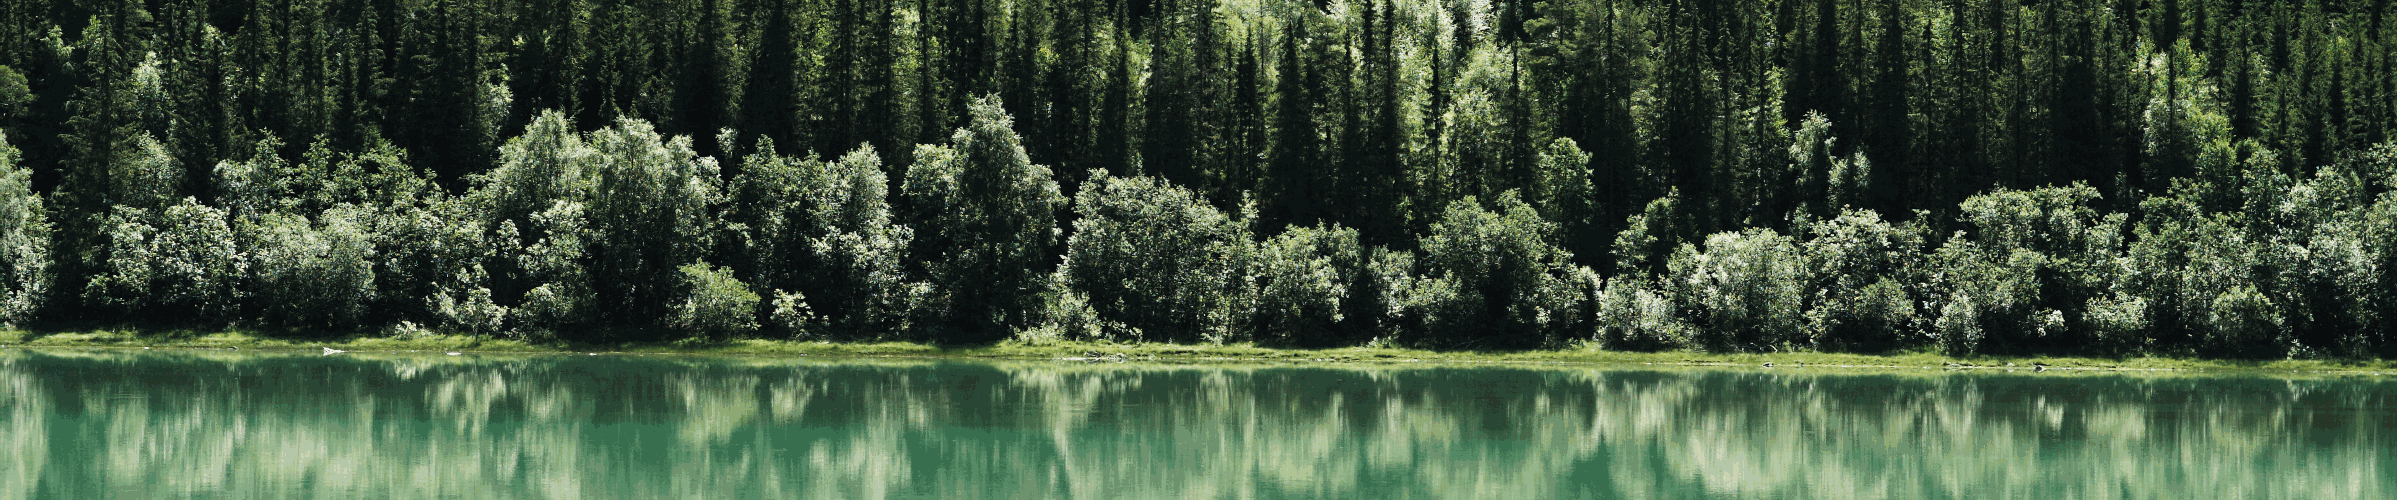 Forest reflected in lake